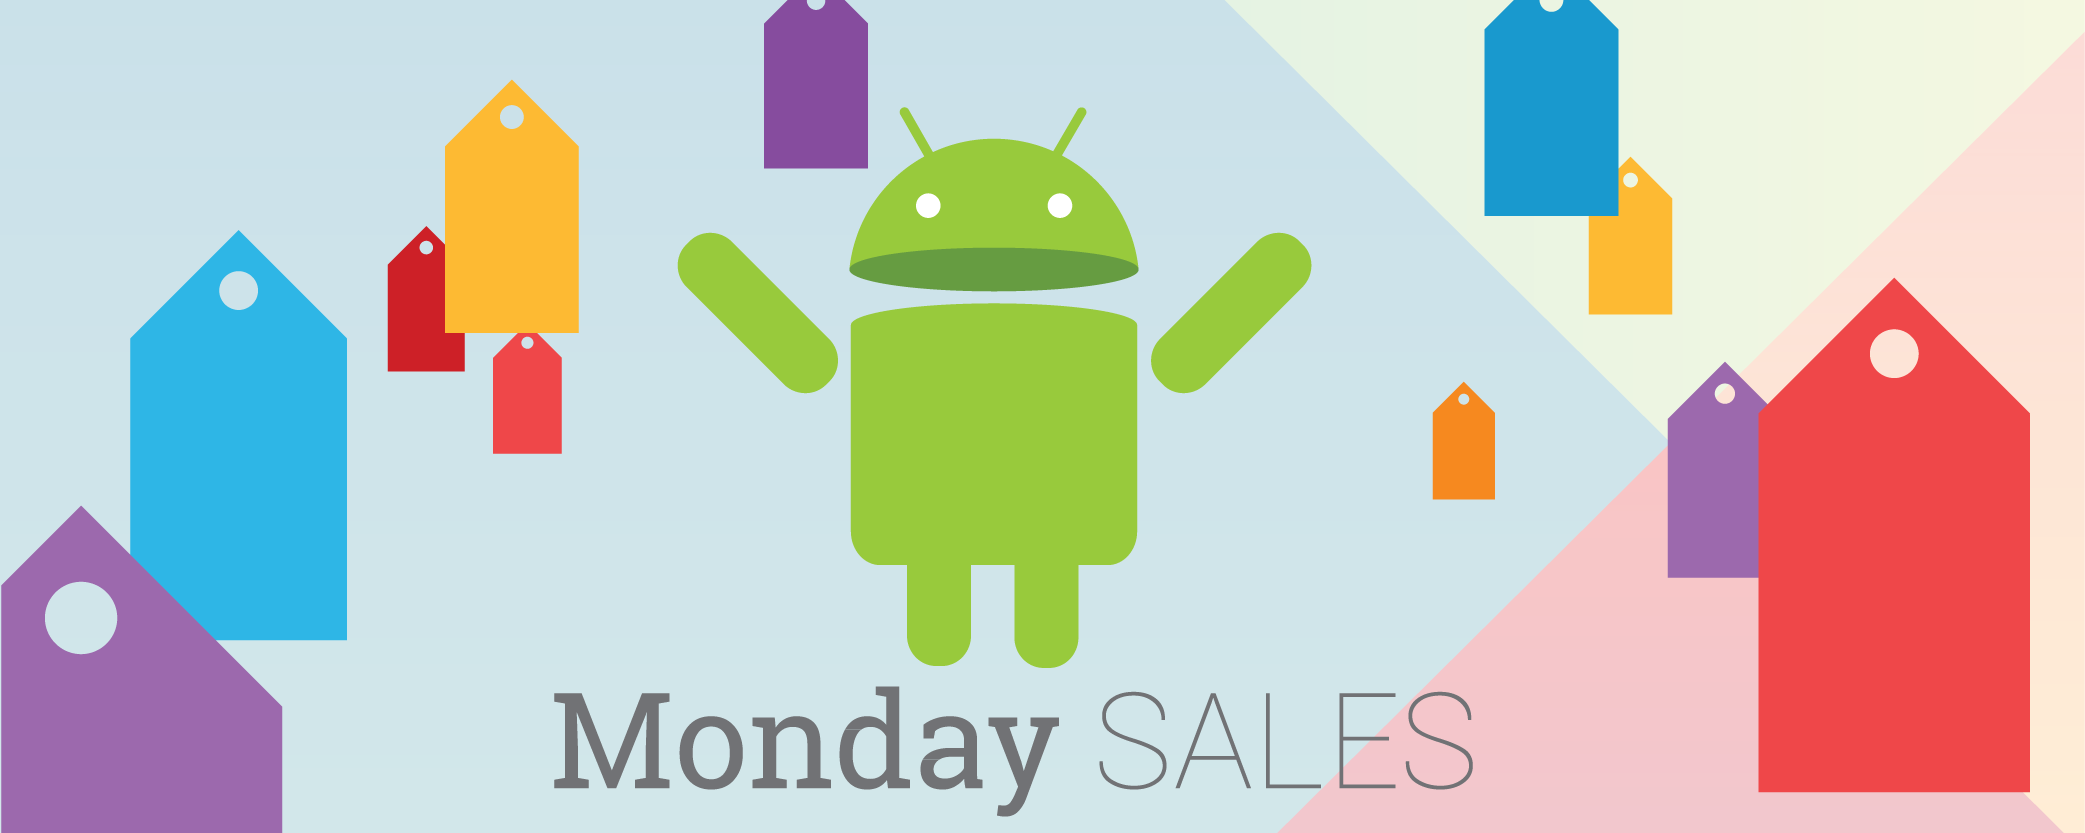 28 temporarily free and 58 on-sale apps and games to kick off the week